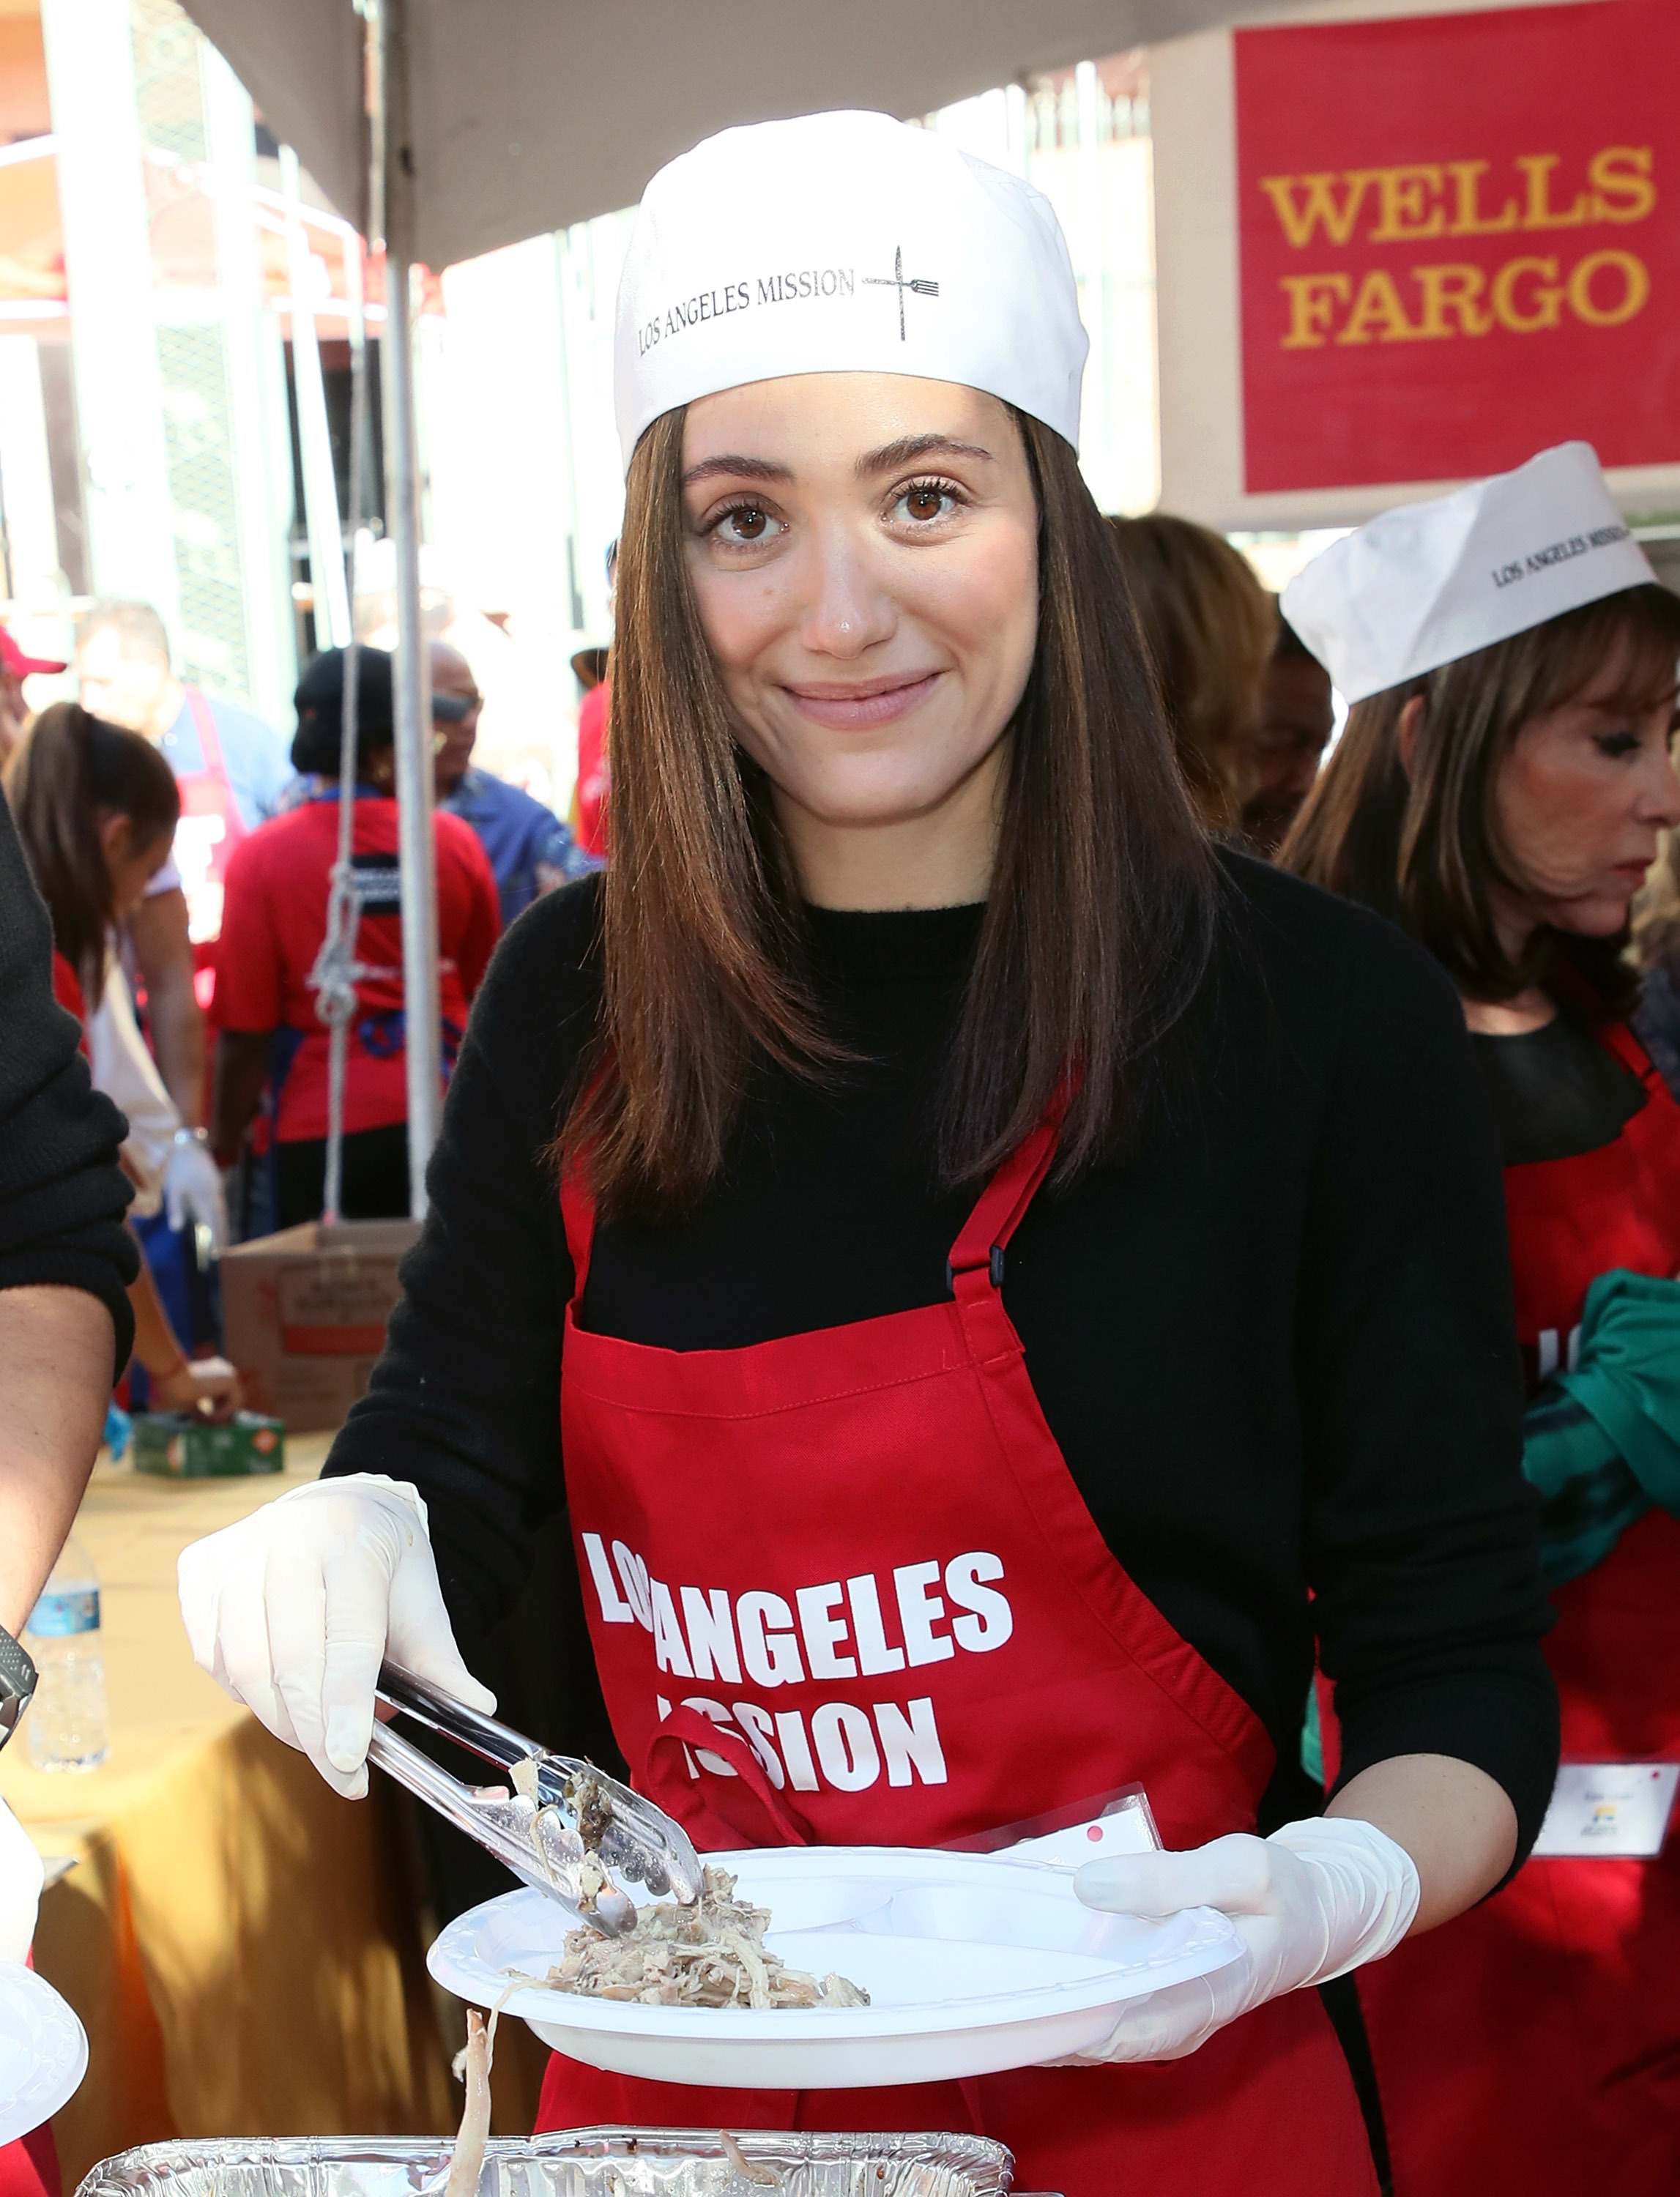 Emmy Rossum attends the Los Angeles Mission Thanksgiving Meal for the homeless at the Los Angeles Mission in Los Angeles on Nov. 22, 2017.